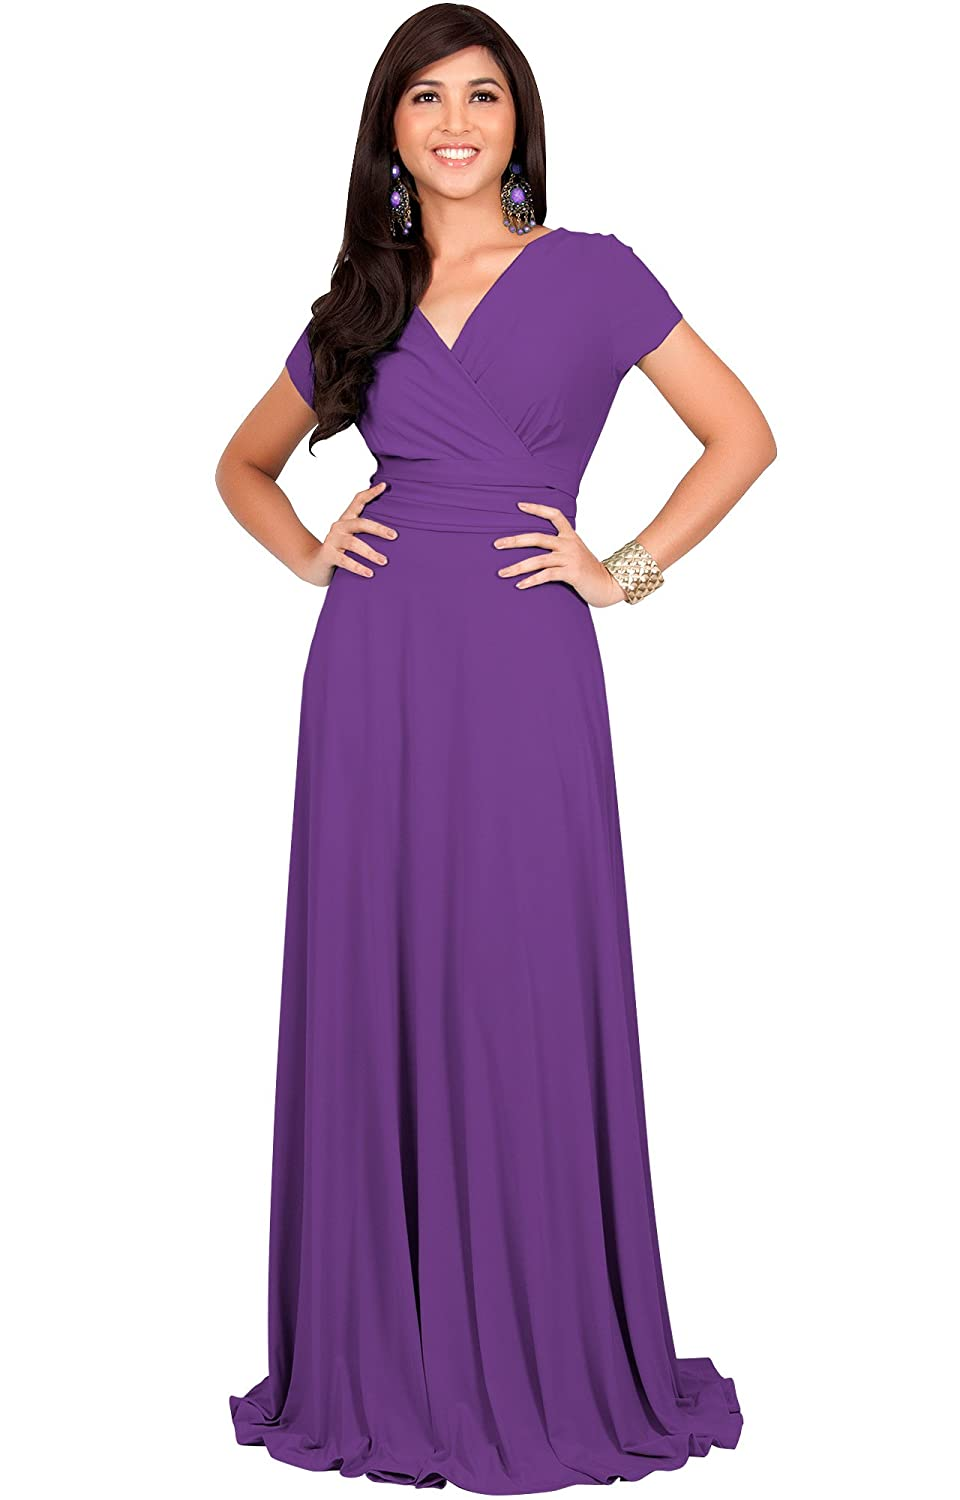 4924471aec4a Koh Koh Womens Long Sexy Cap Short Sleeve V-Neck Flowy Cocktail Gown Maxi  Dress - Purple - X-Large  Amazon.co.uk  Clothing